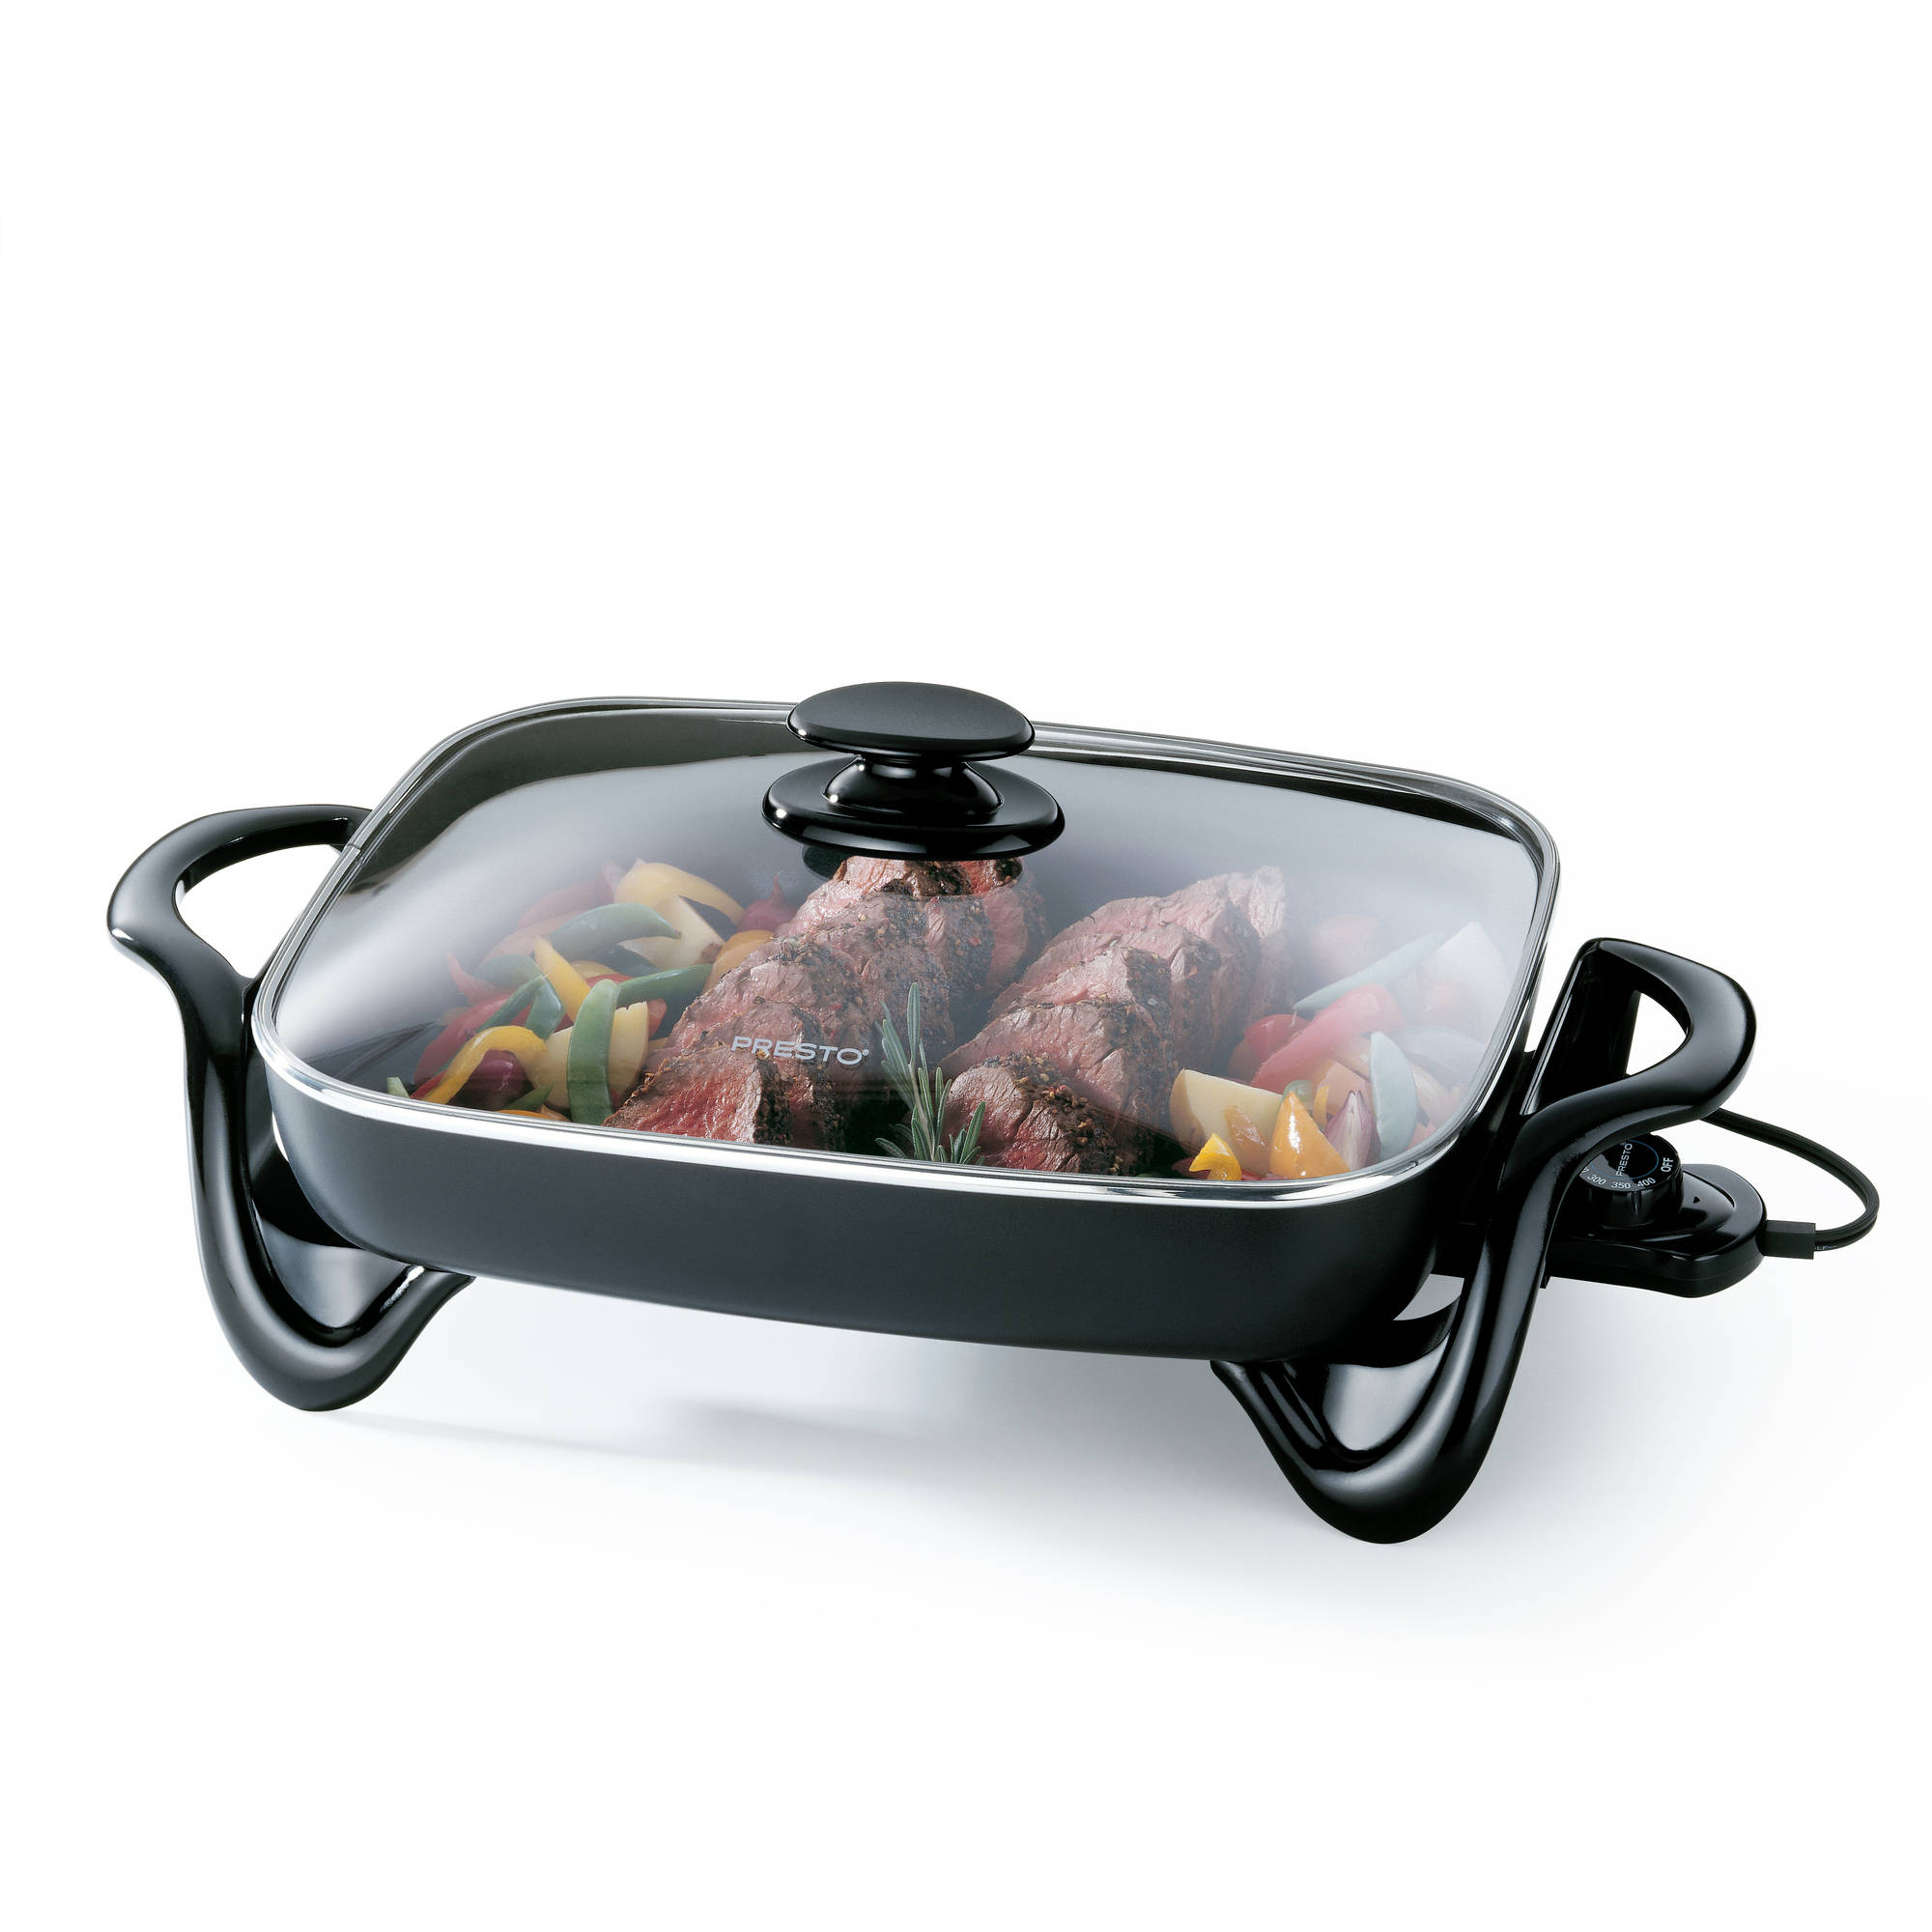 "Presto 16"" Electric Skillet With Glass Cover, 06852"